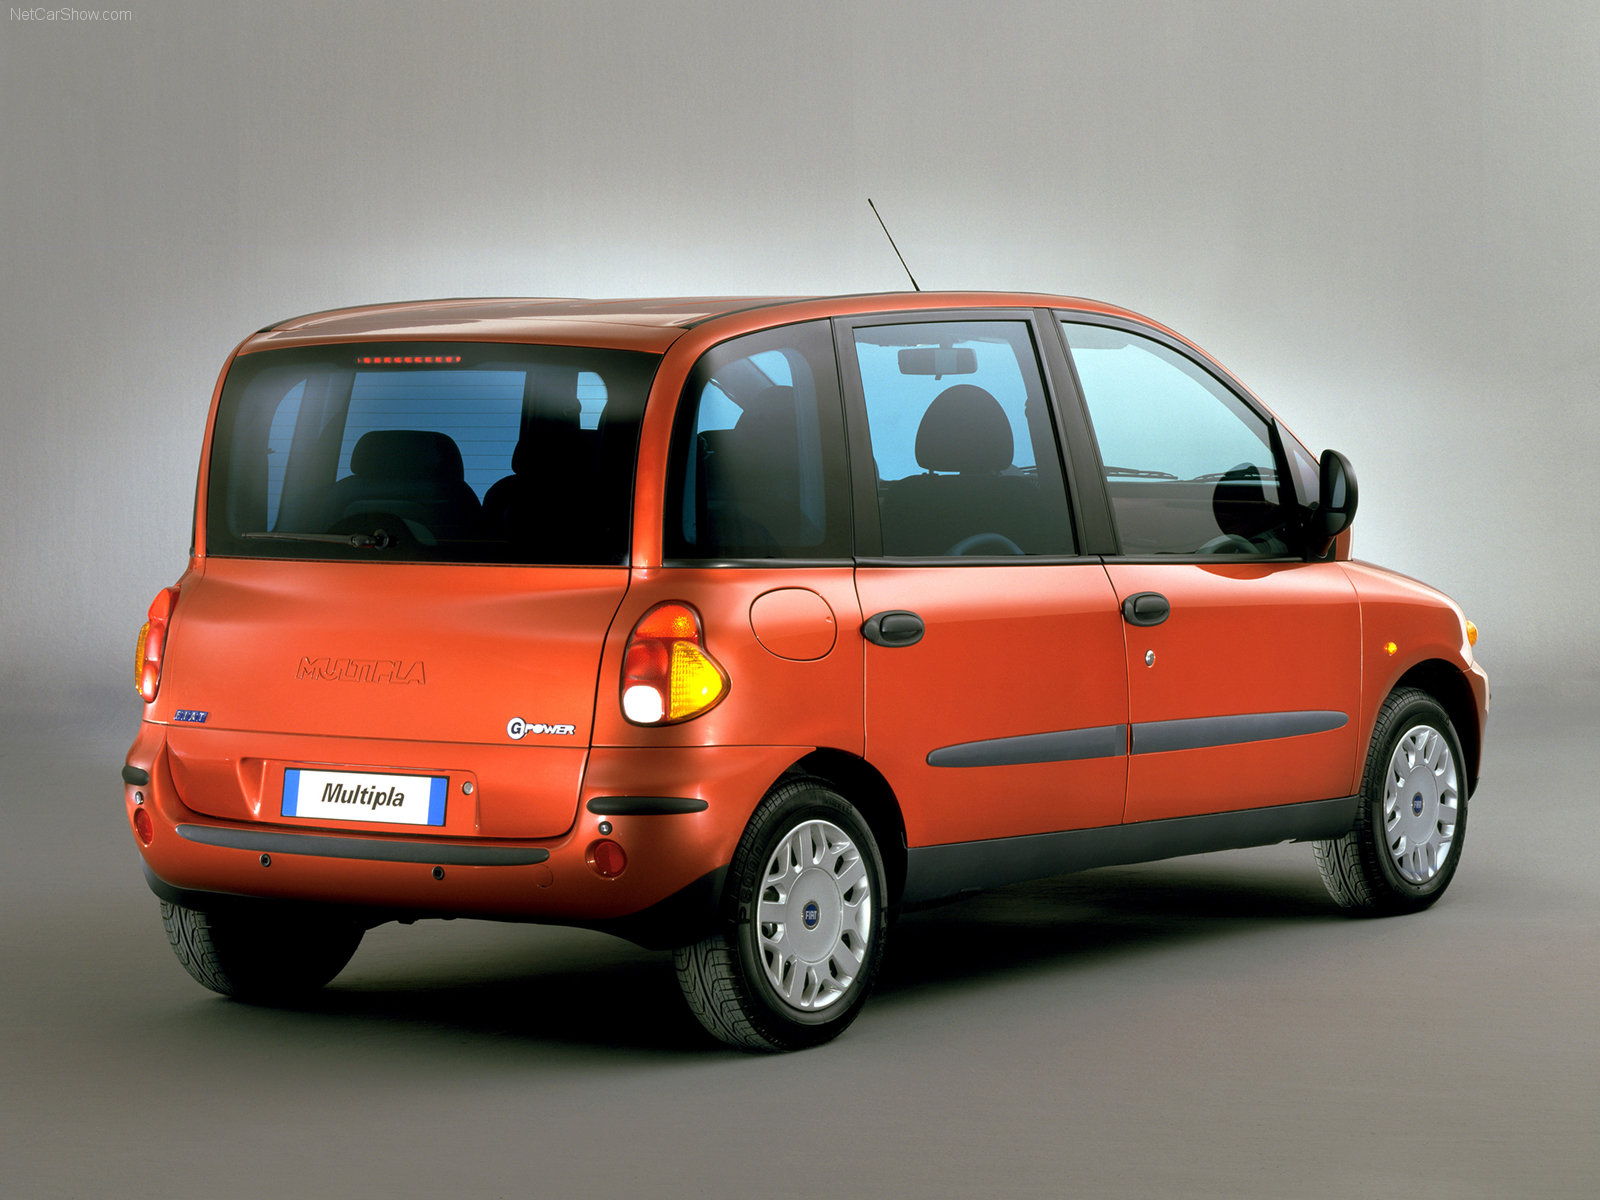 Fiat Multipla photo 35080